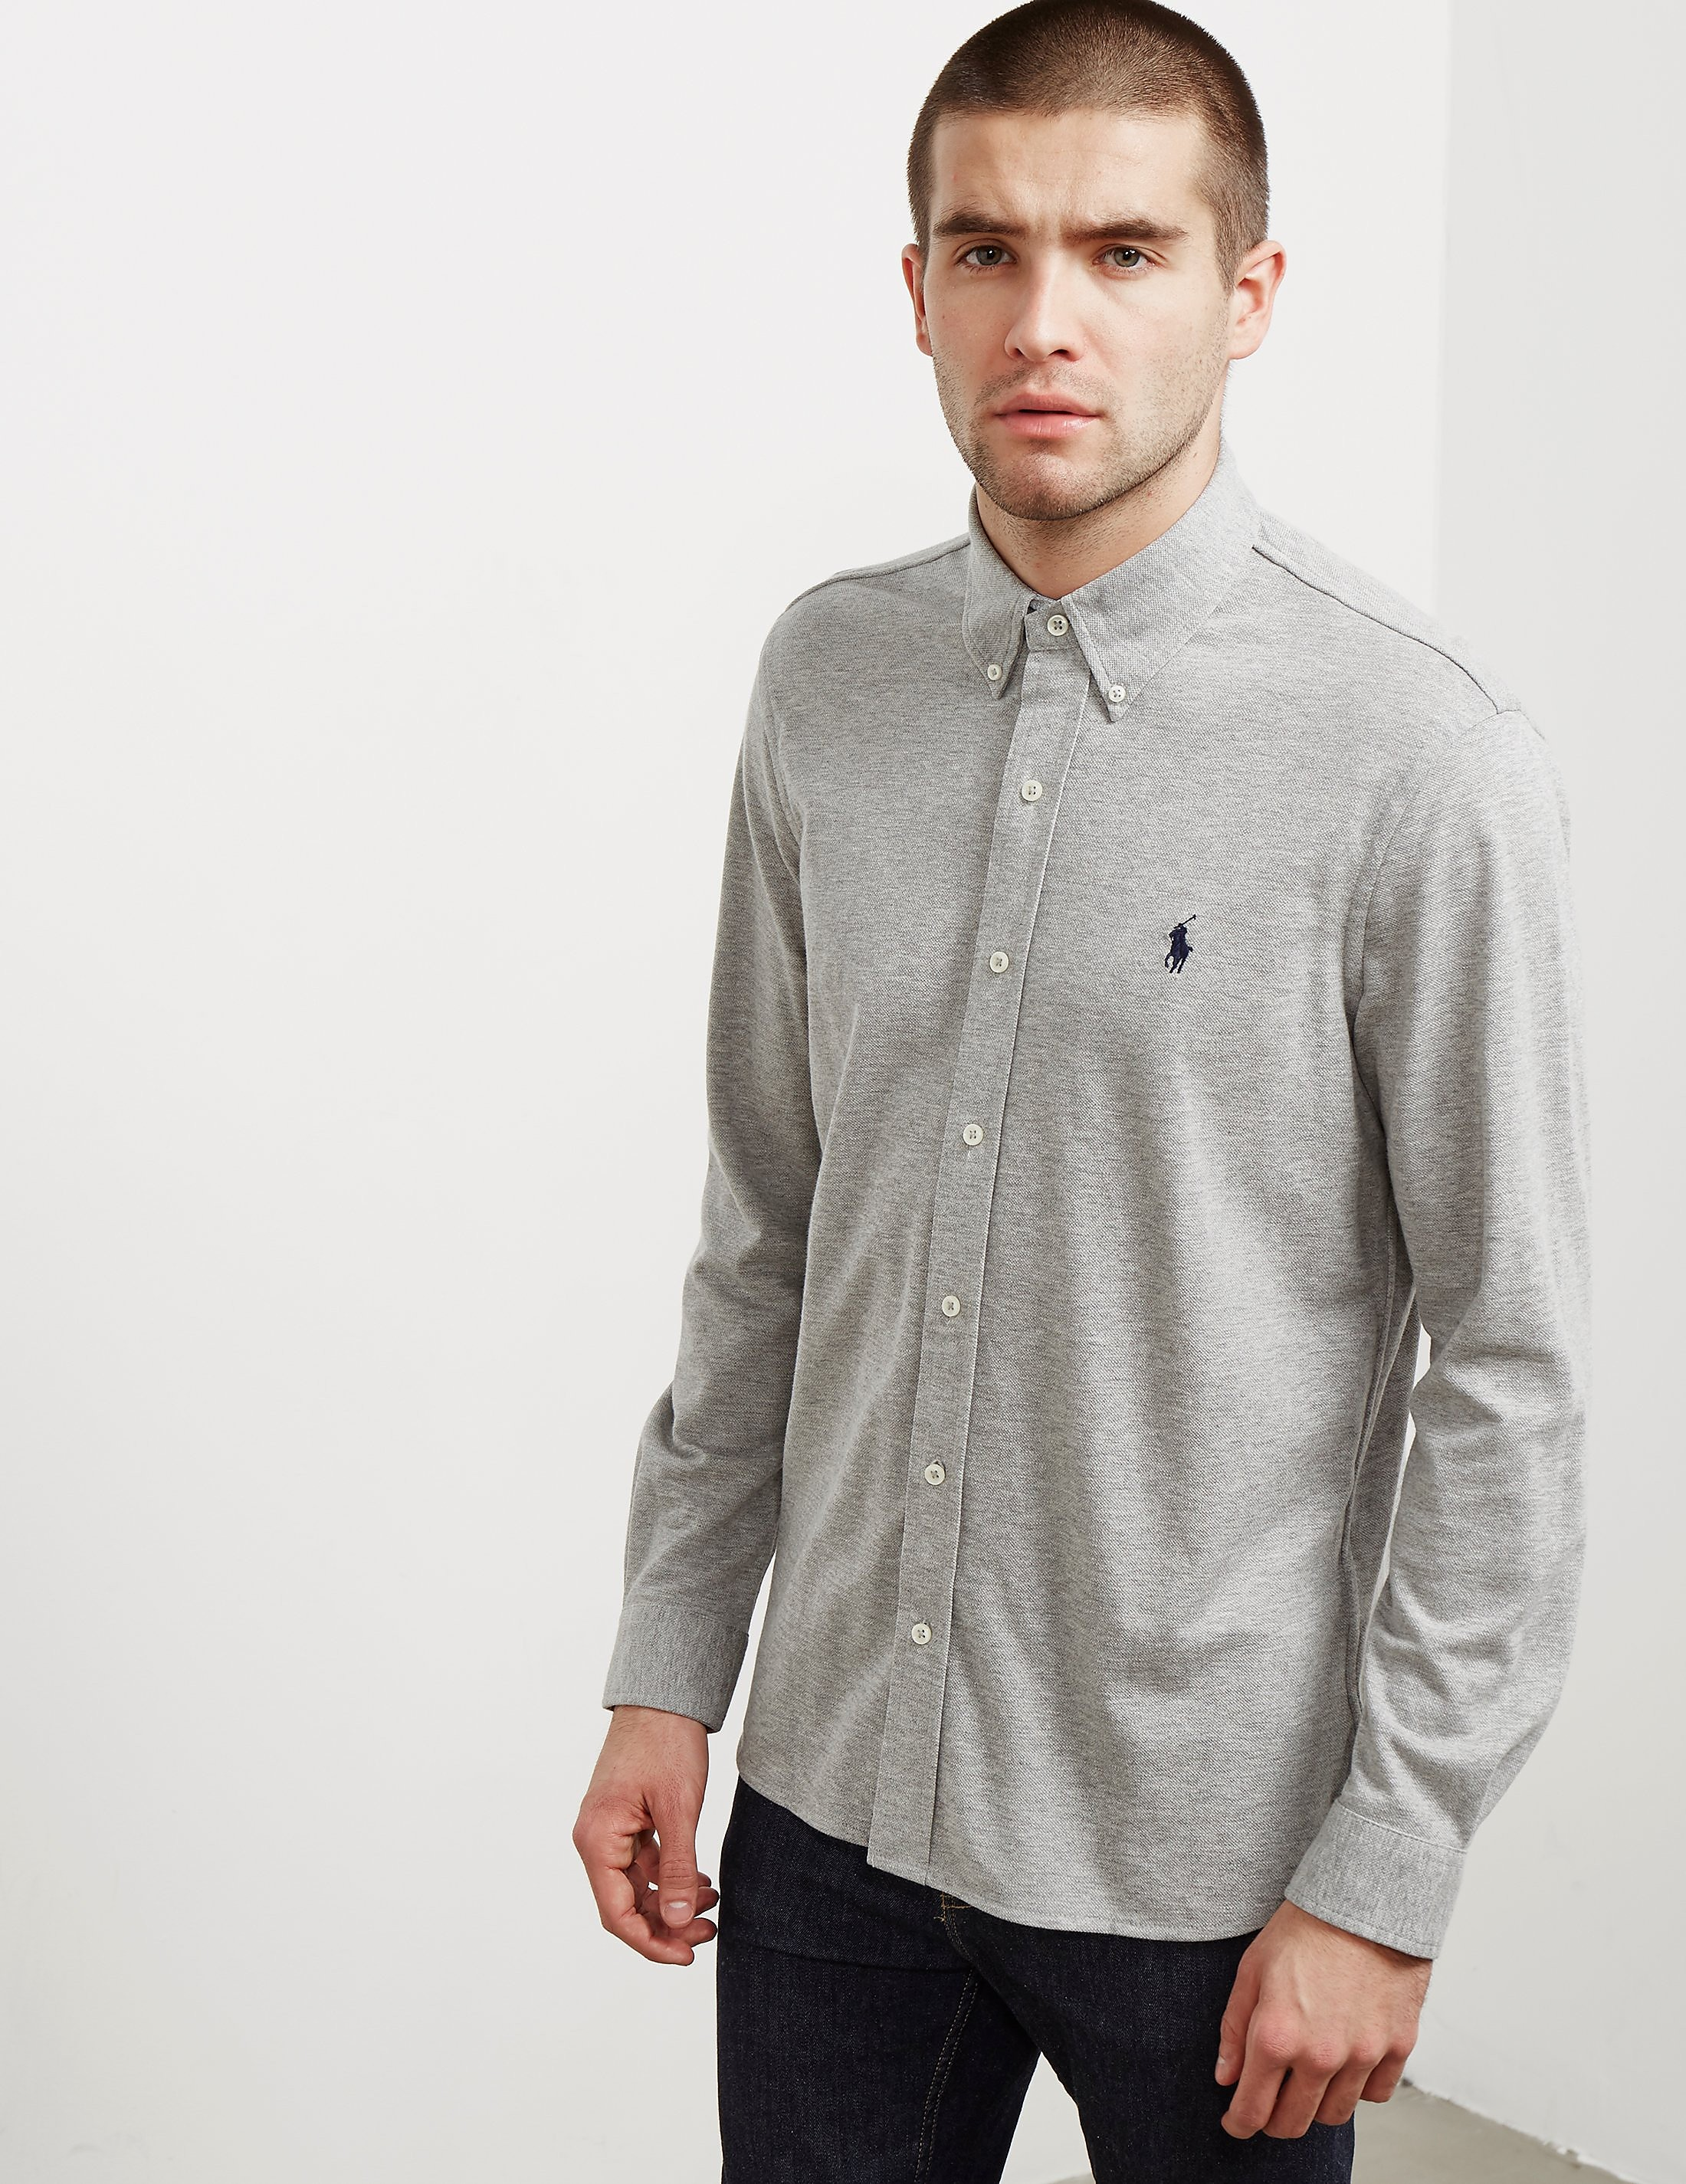 Polo Ralph Lauren Mesh Long Sleeve Shirt